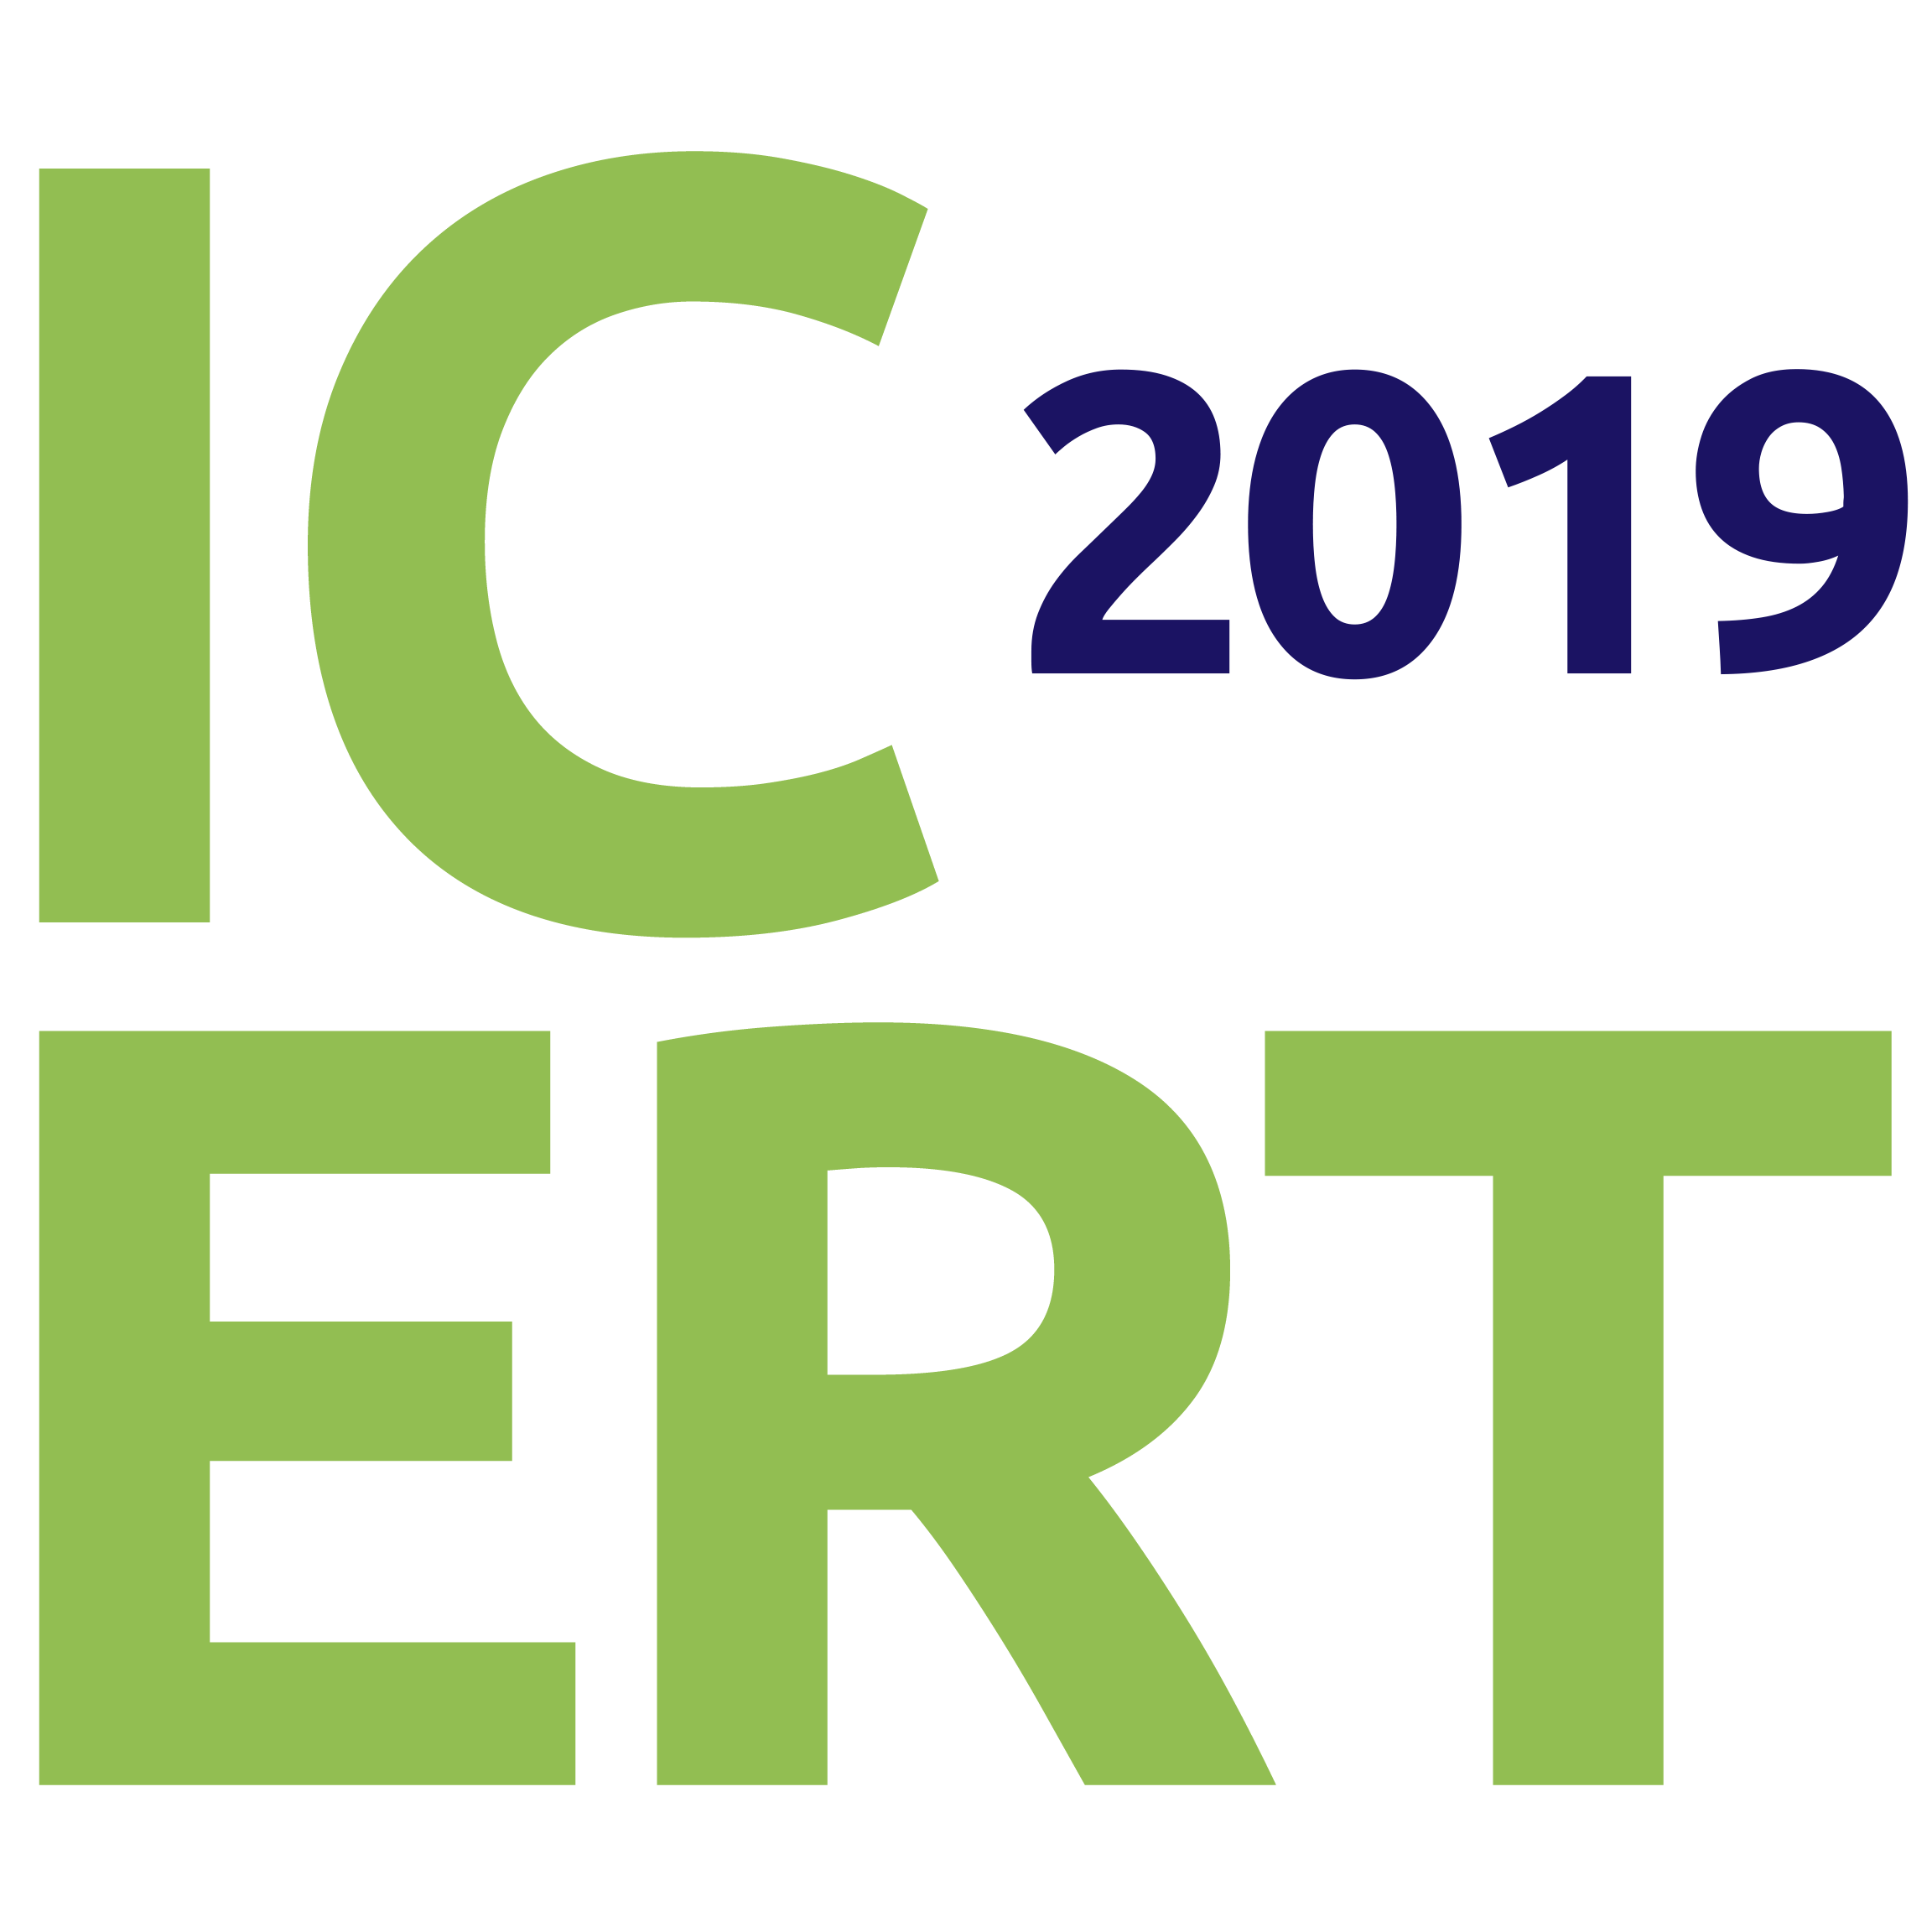 Conference clipart international conference. Icert rd on energy